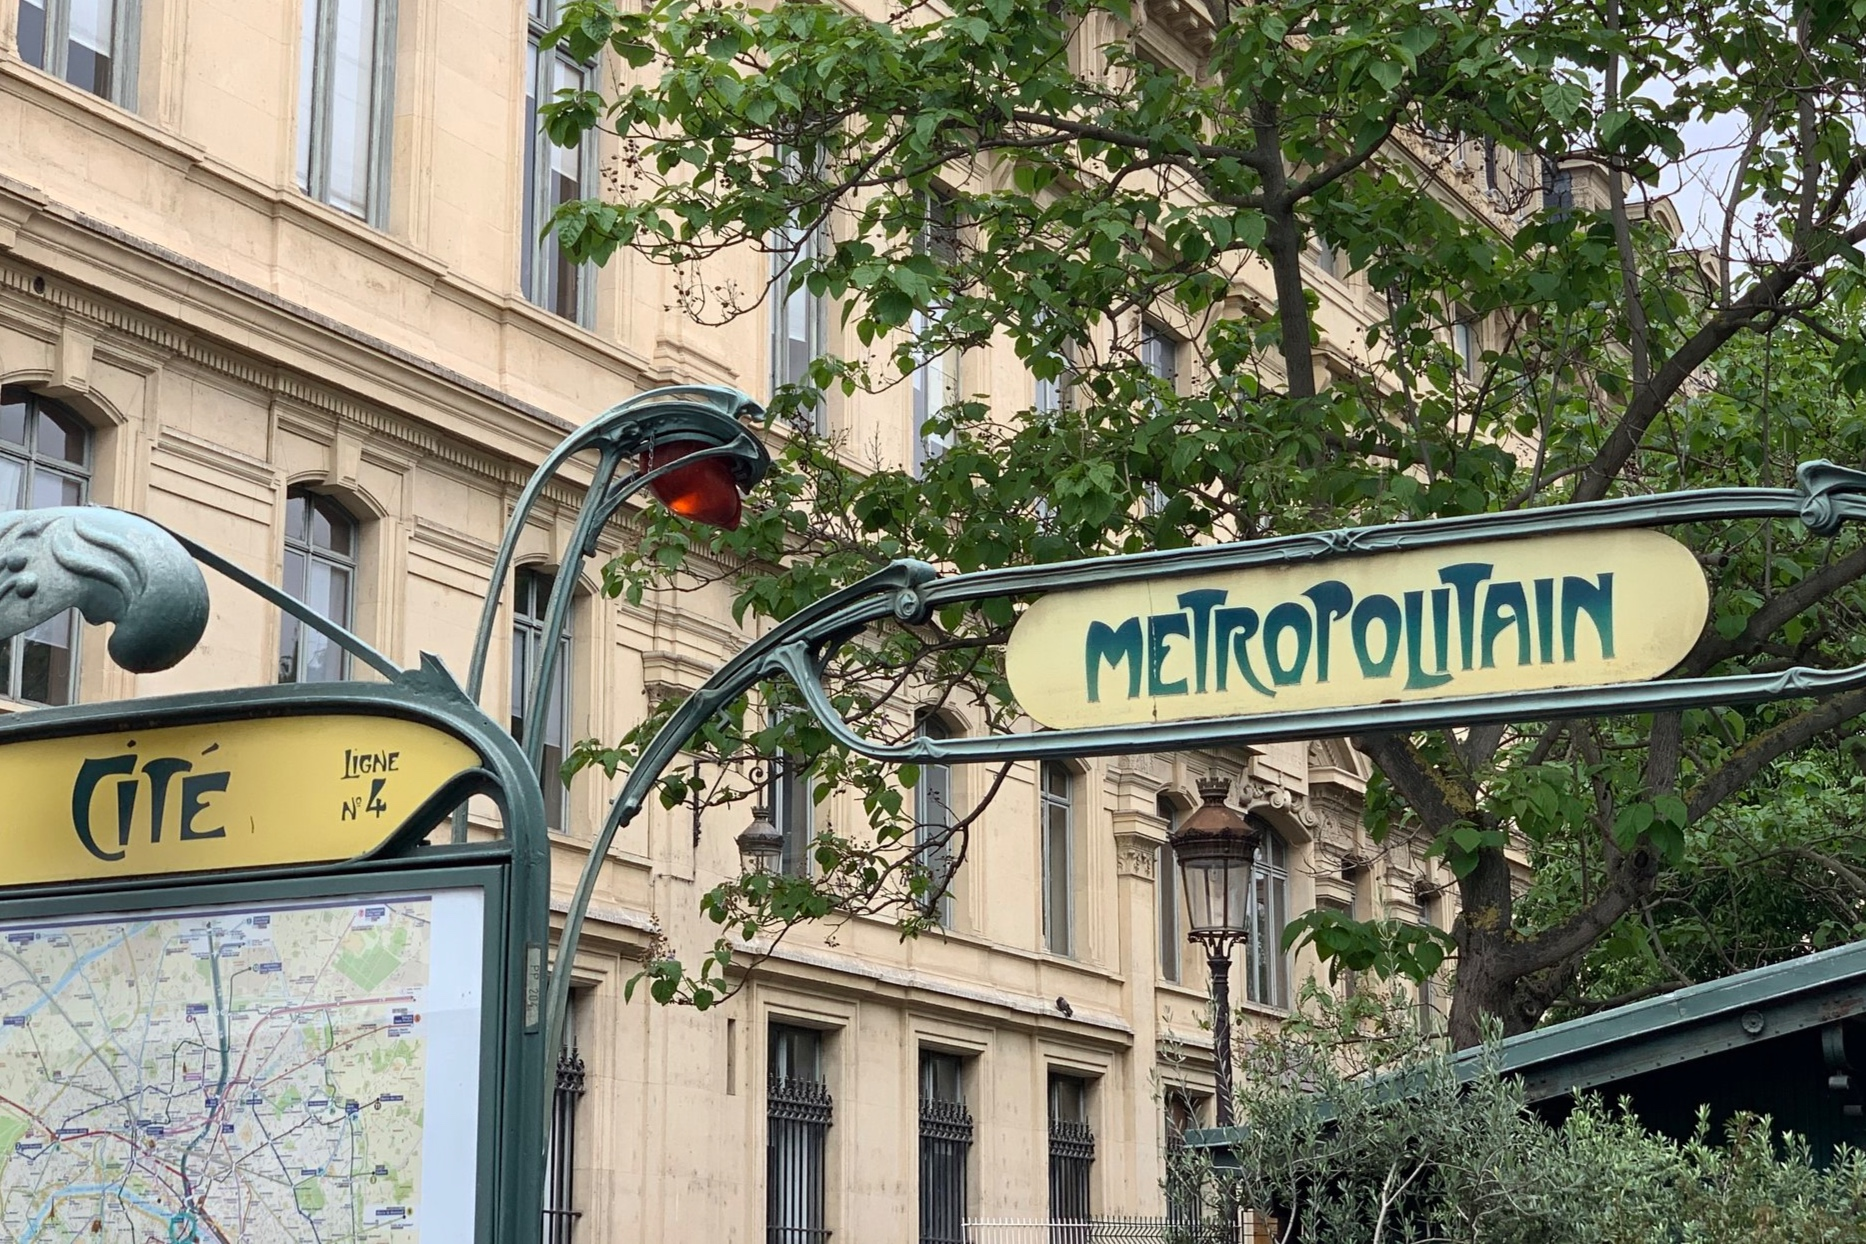 Some Art Nouveau style Metro signs.